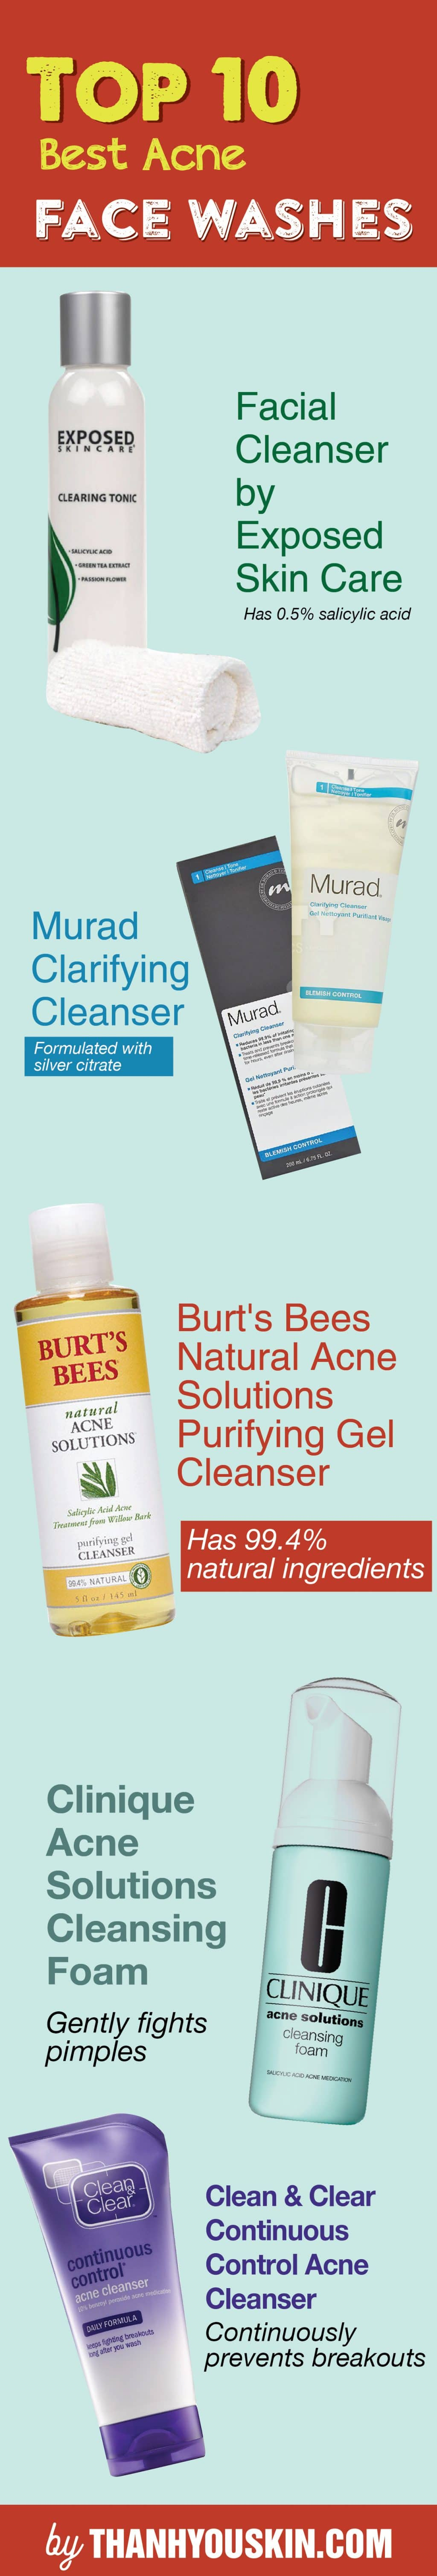 best acne face wash and cleanser